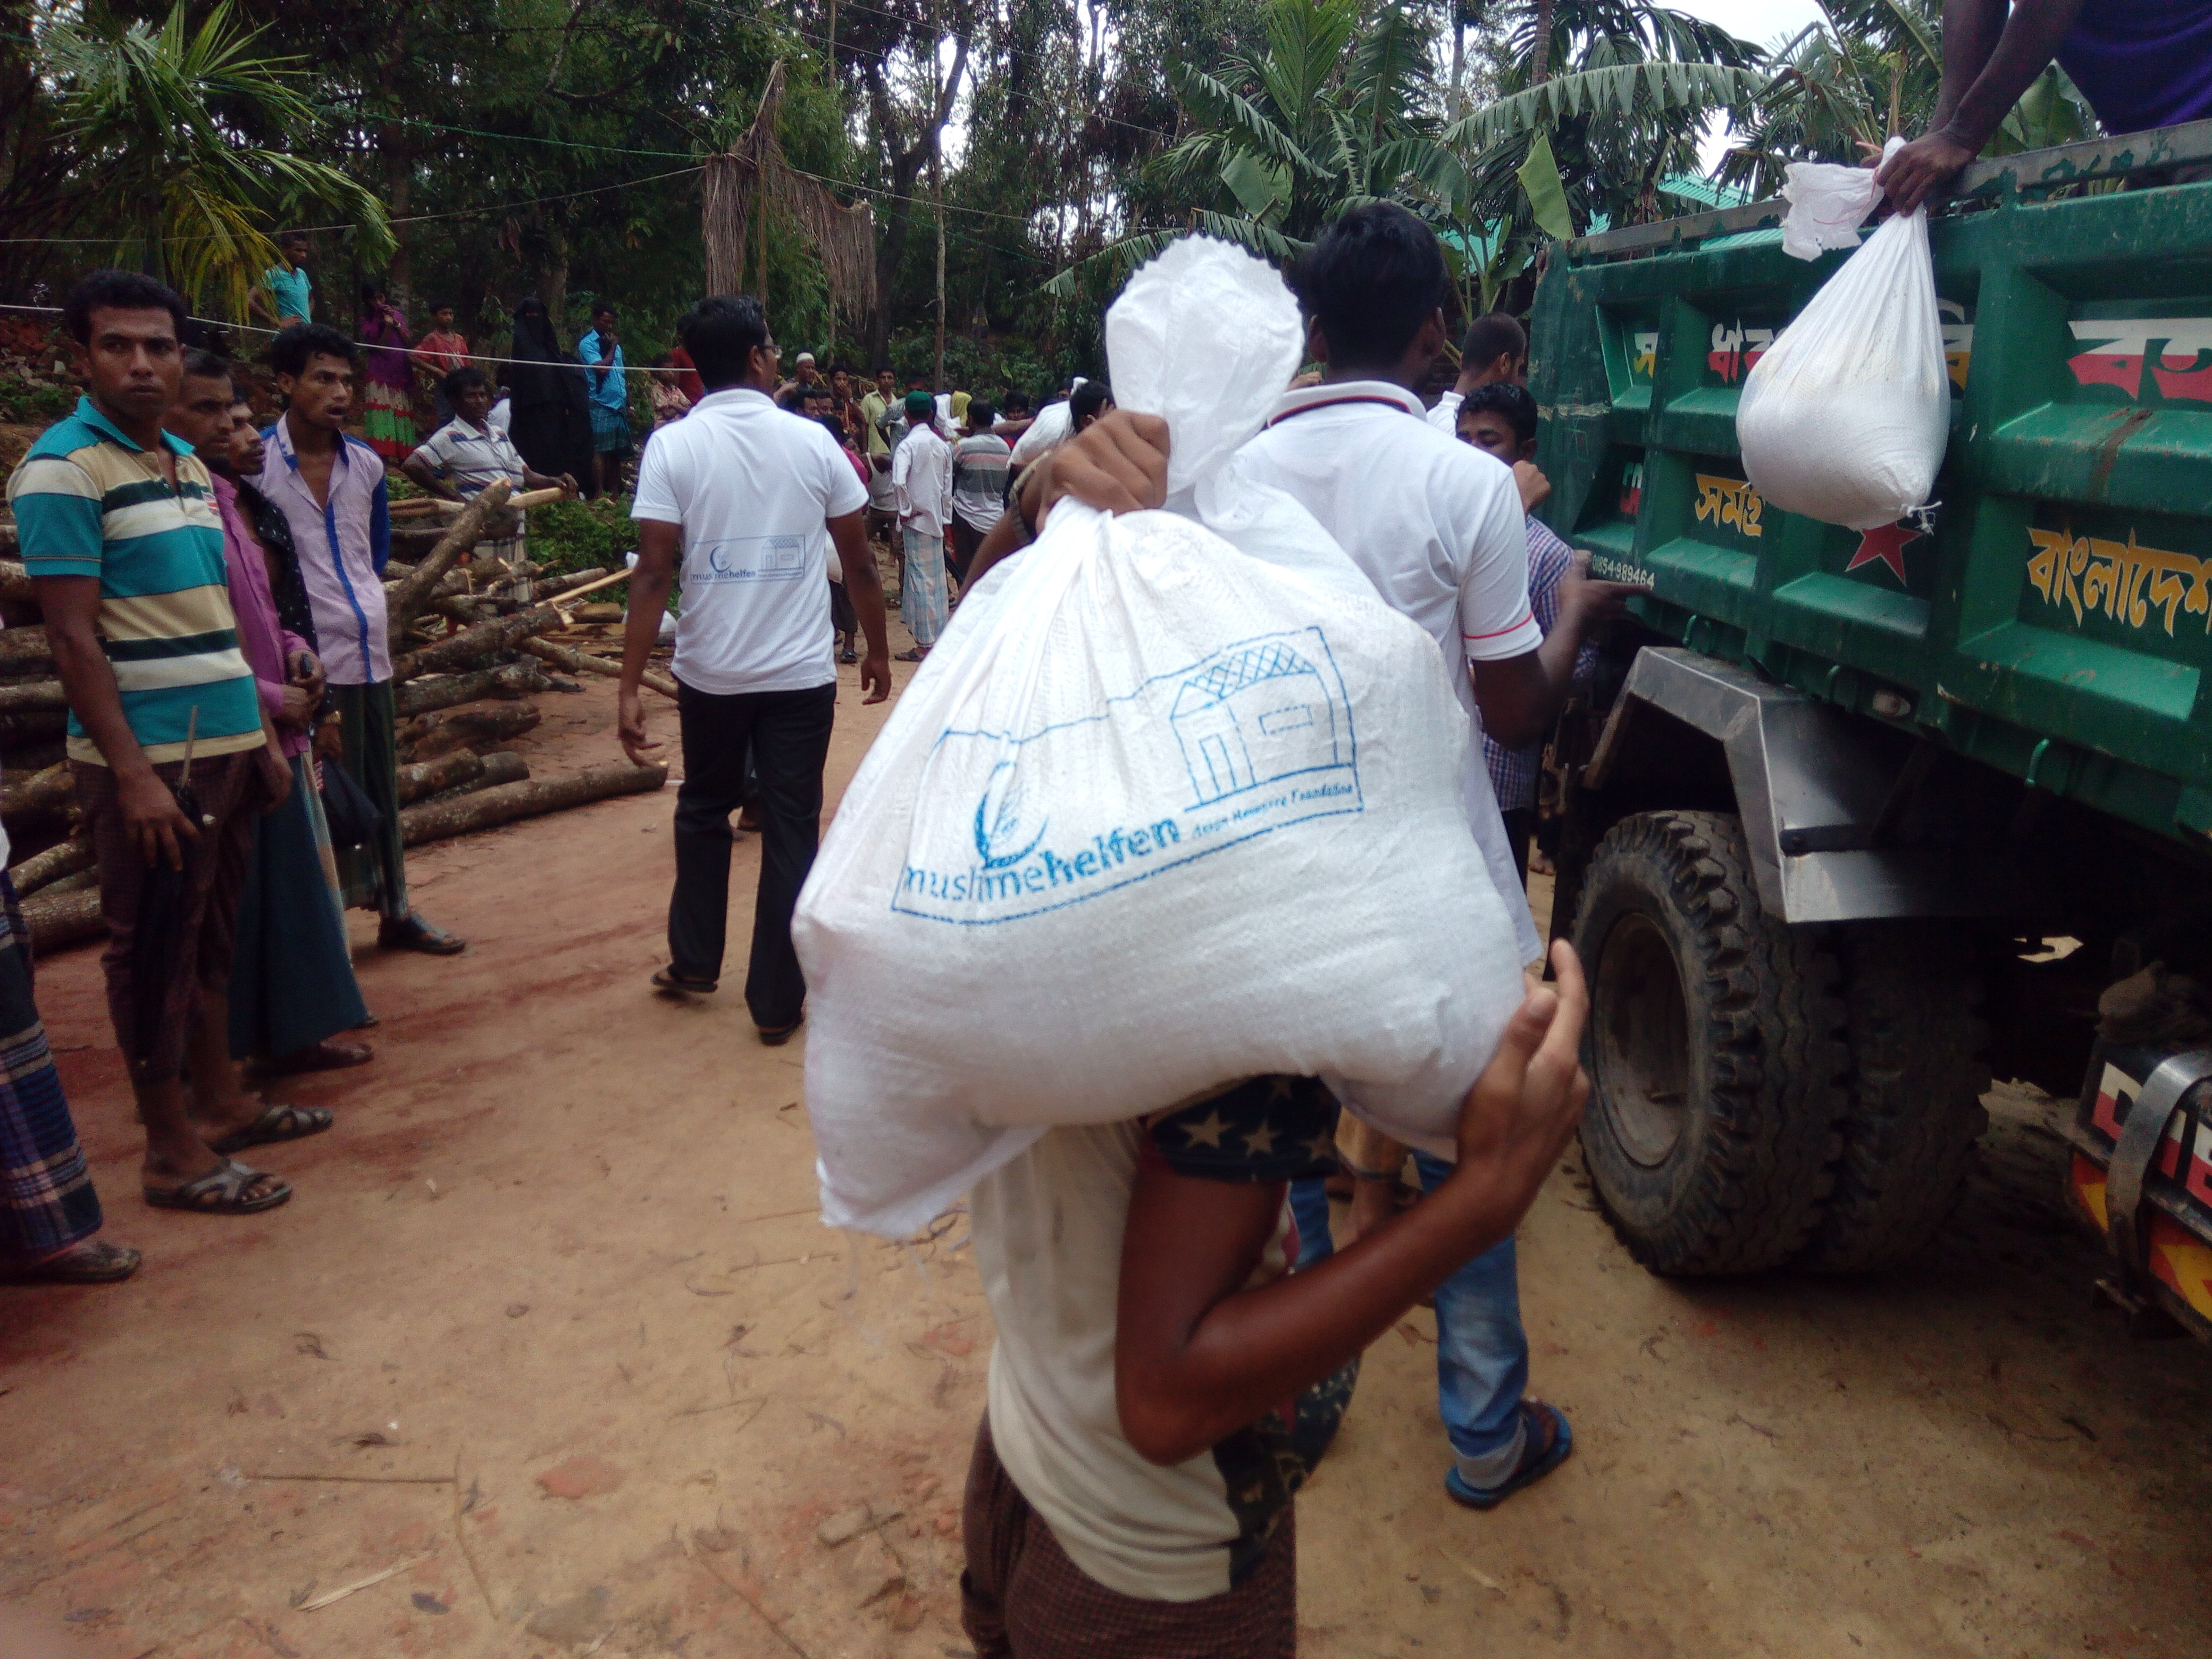 02 In collaboration with the Muslimehelfen Germany for monthly food assistance in Rohingya Refugee Camps